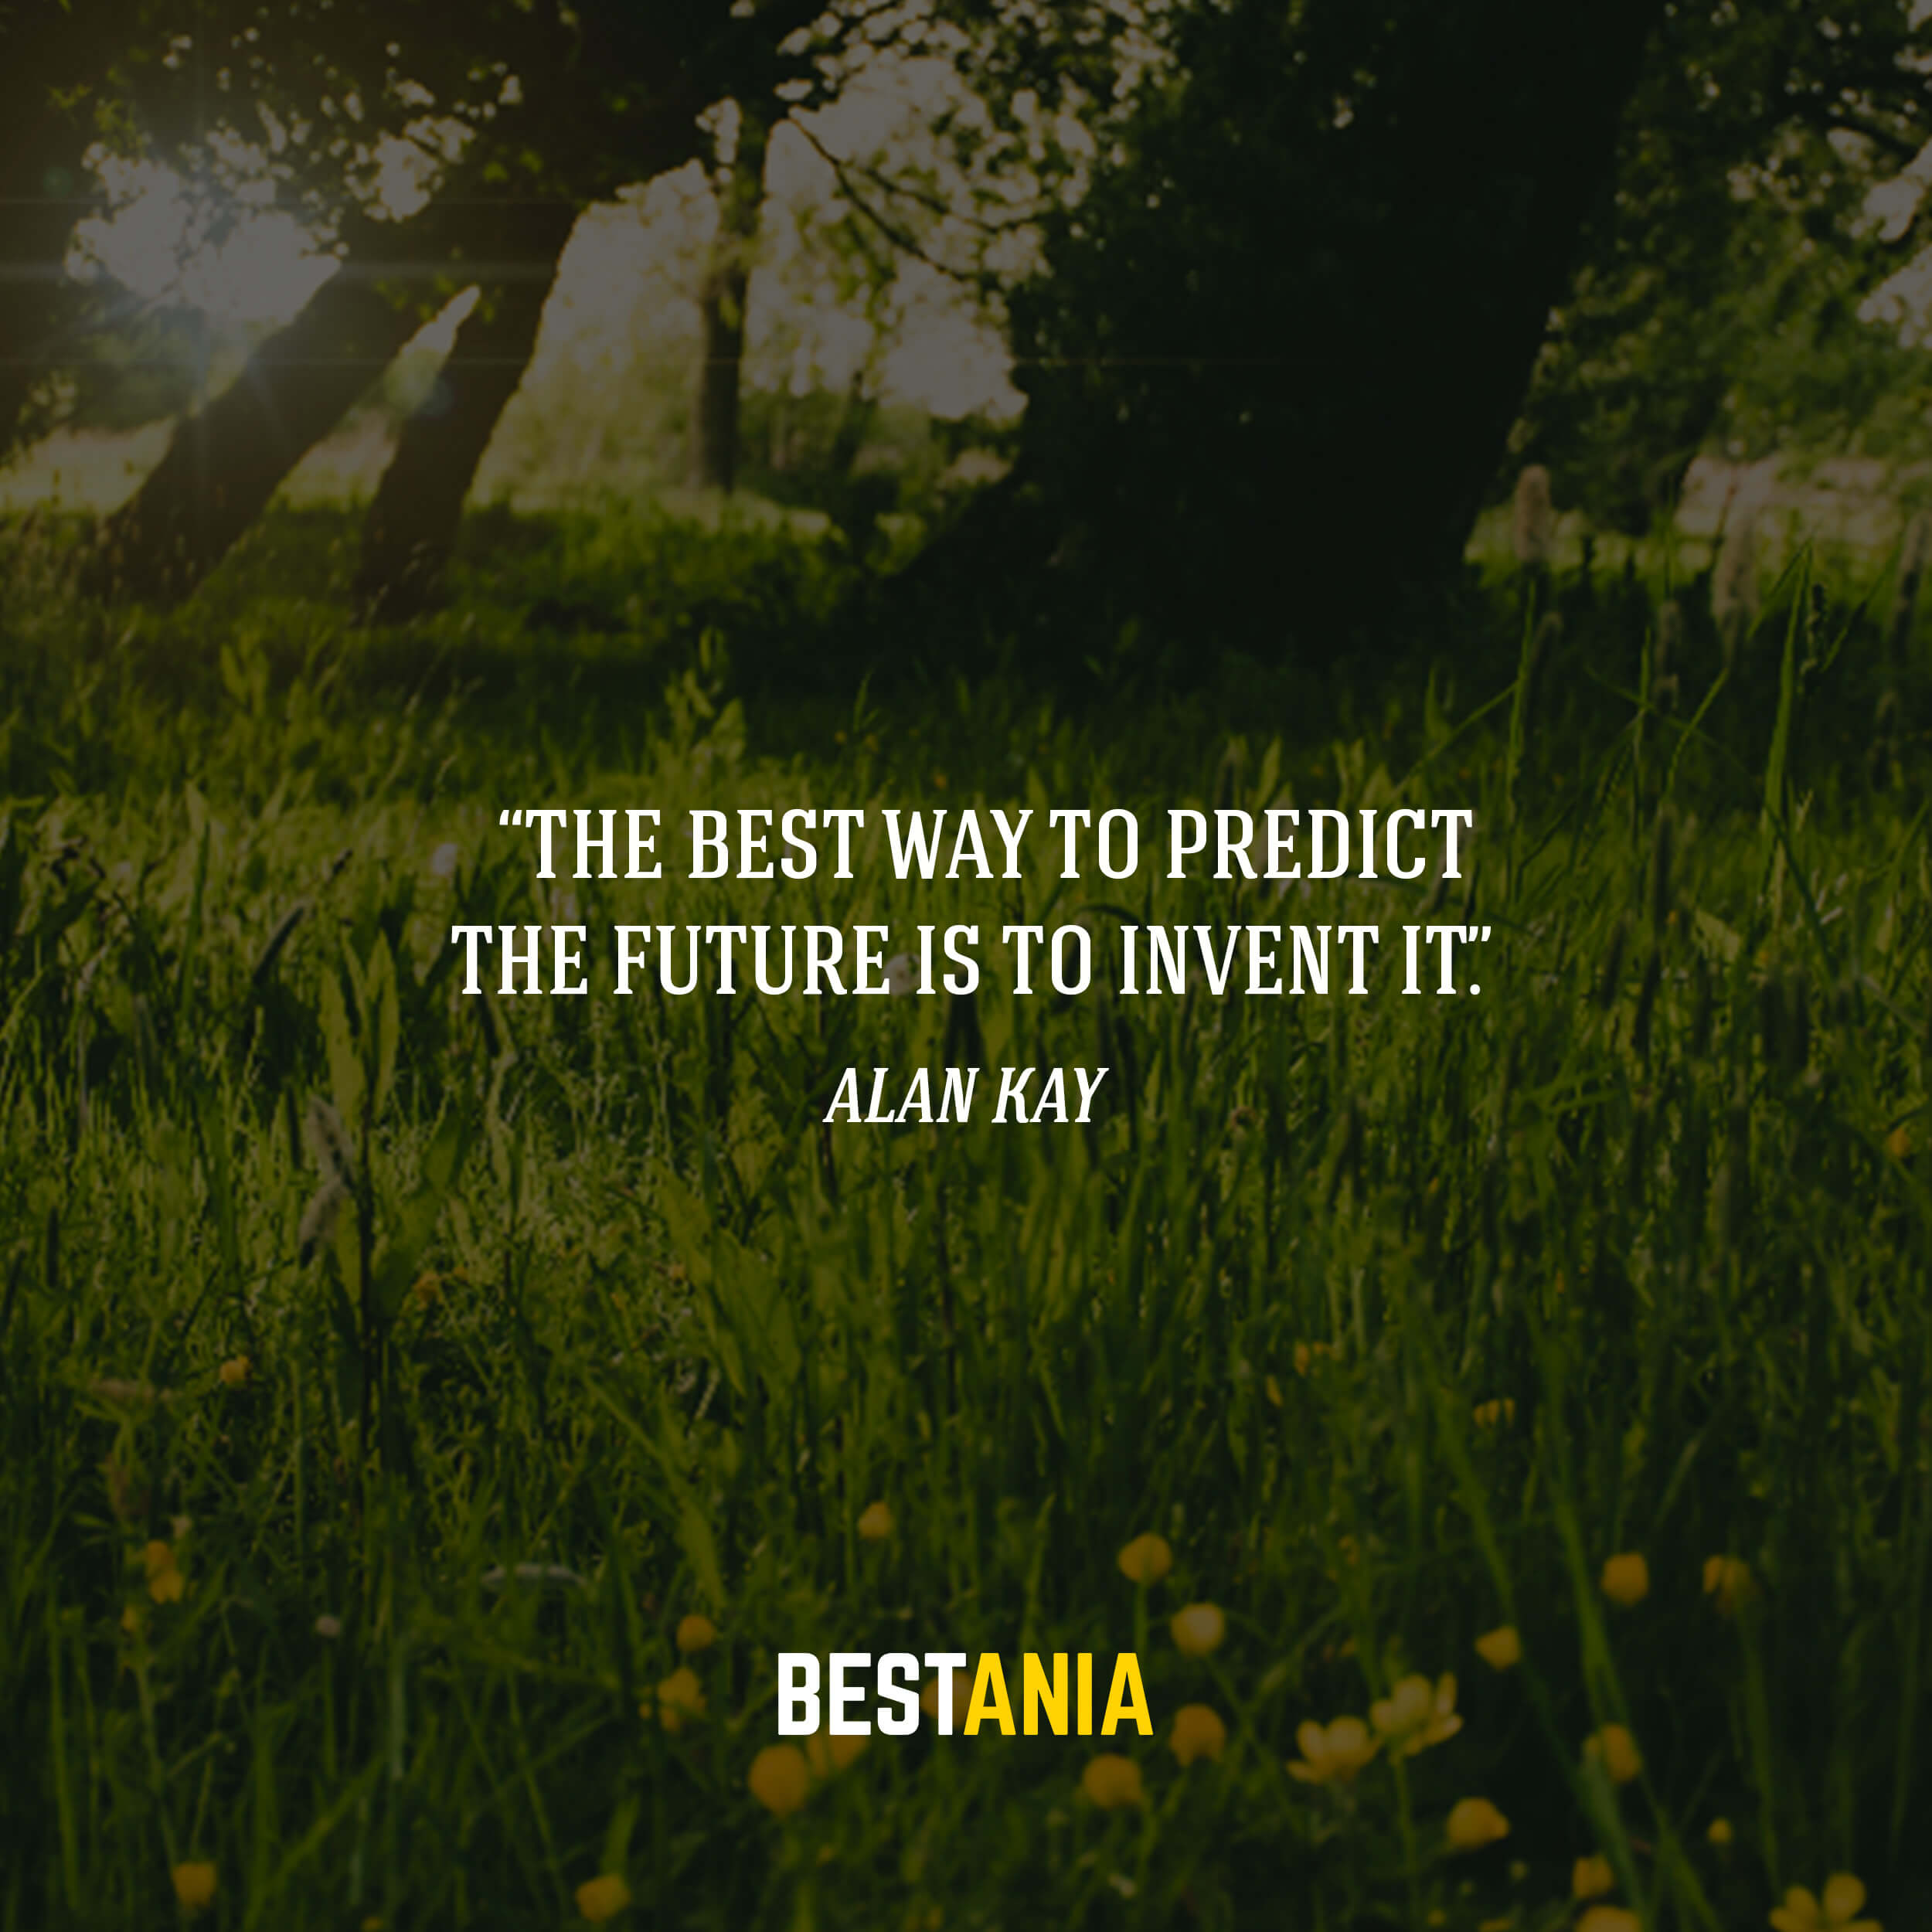 """The best way to predict the future is to invent it."" – Alan Kay"